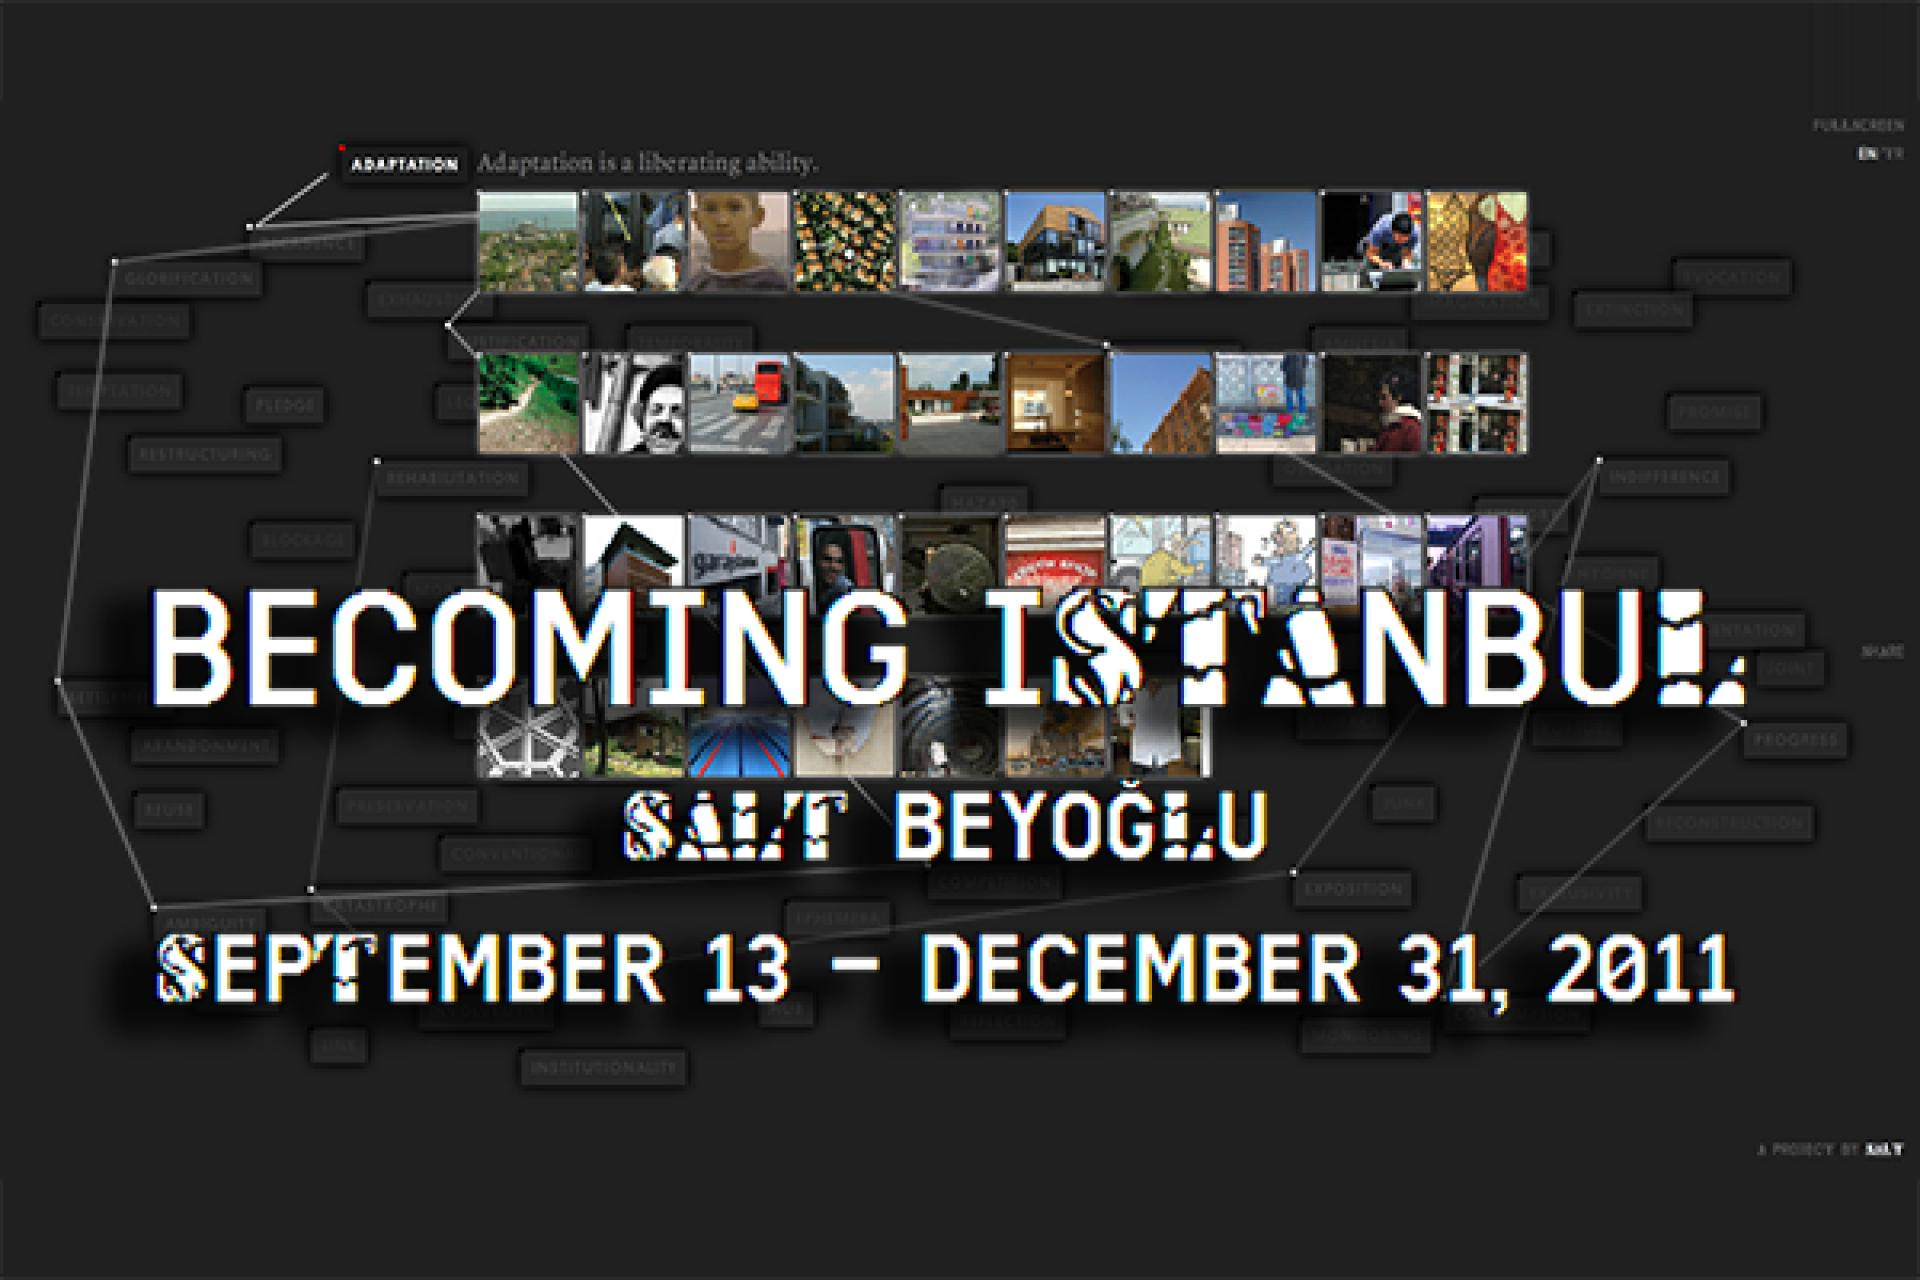 Becoming İstanbul - database